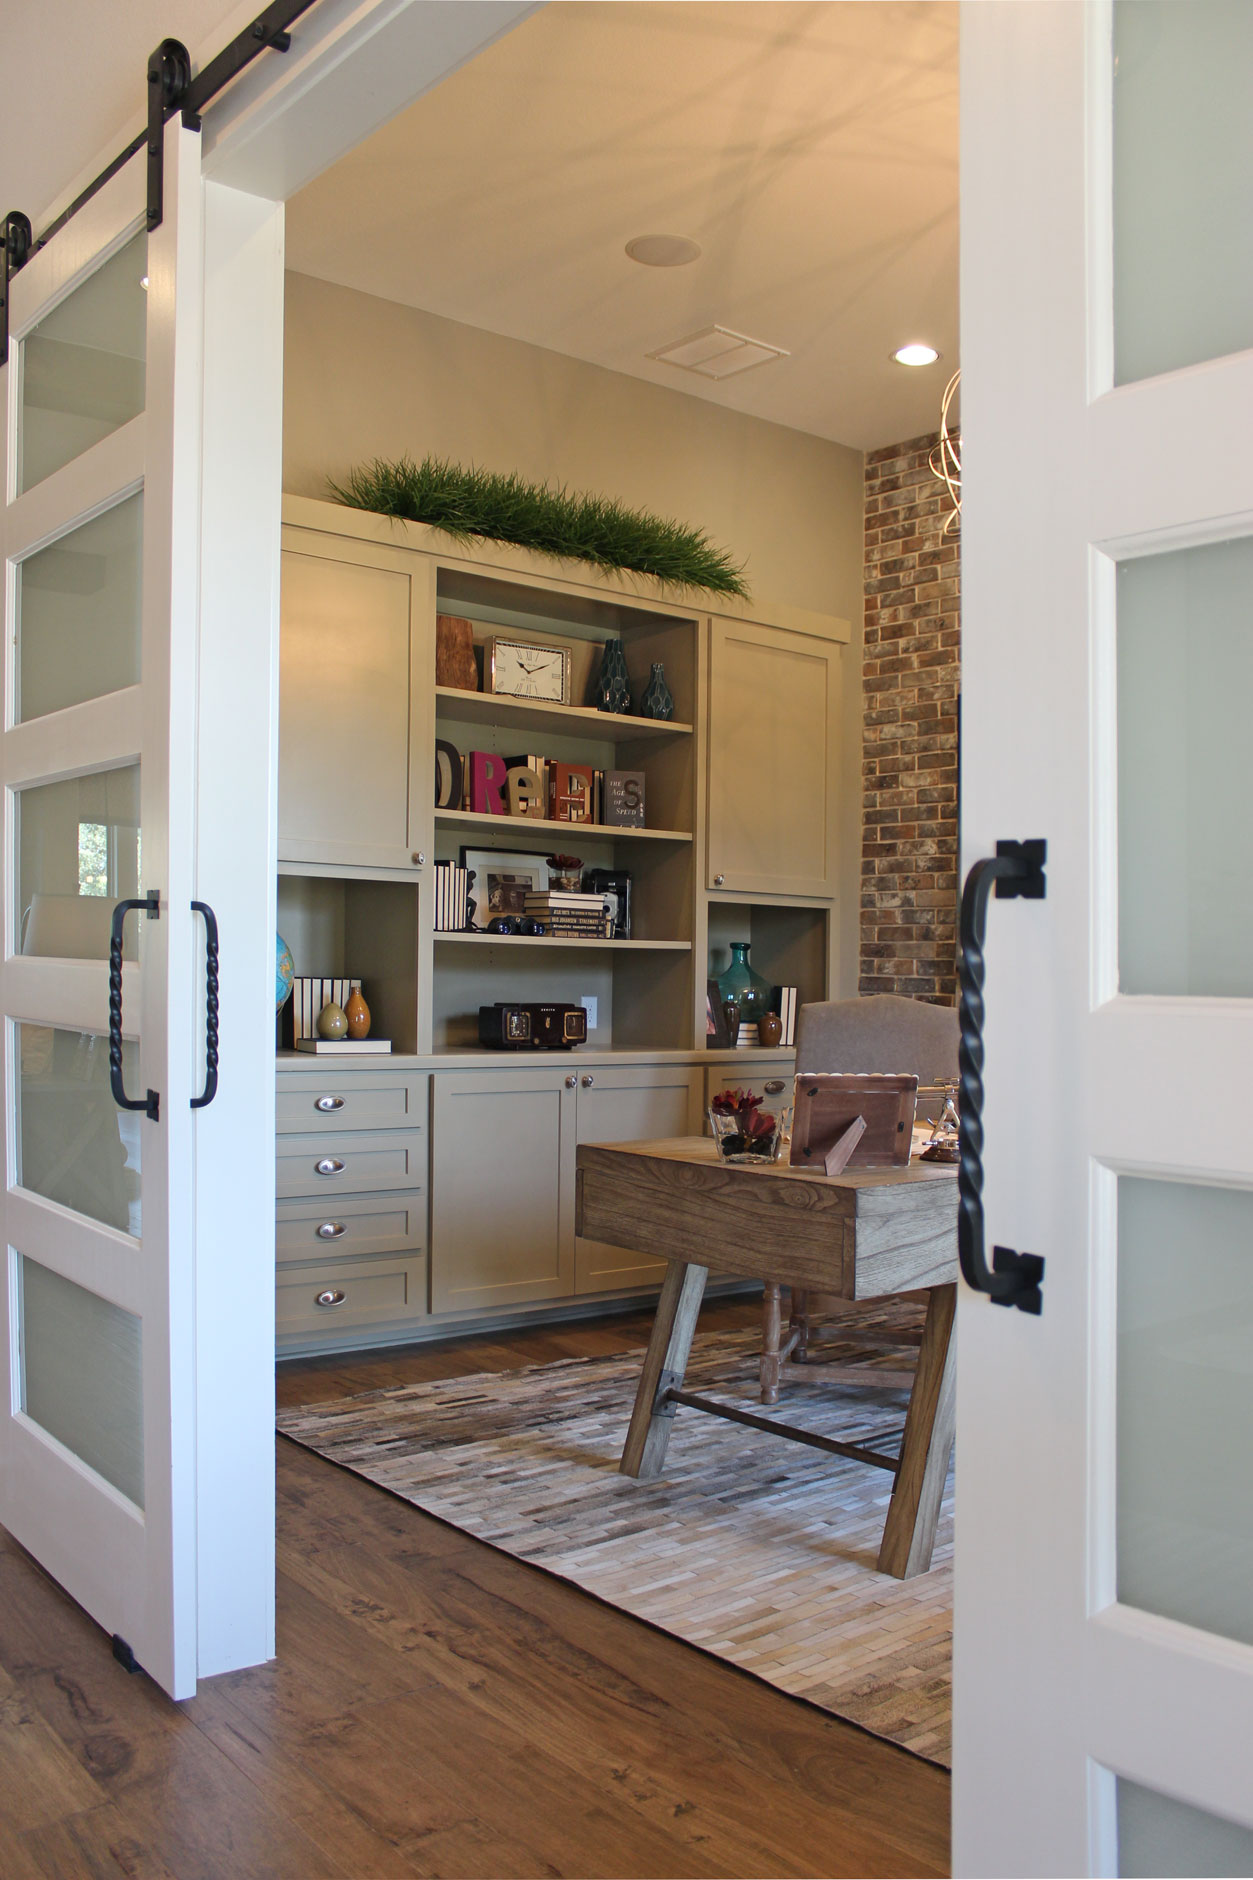 Burrows Cabinets' study with gray cabinets and sliding barn doors